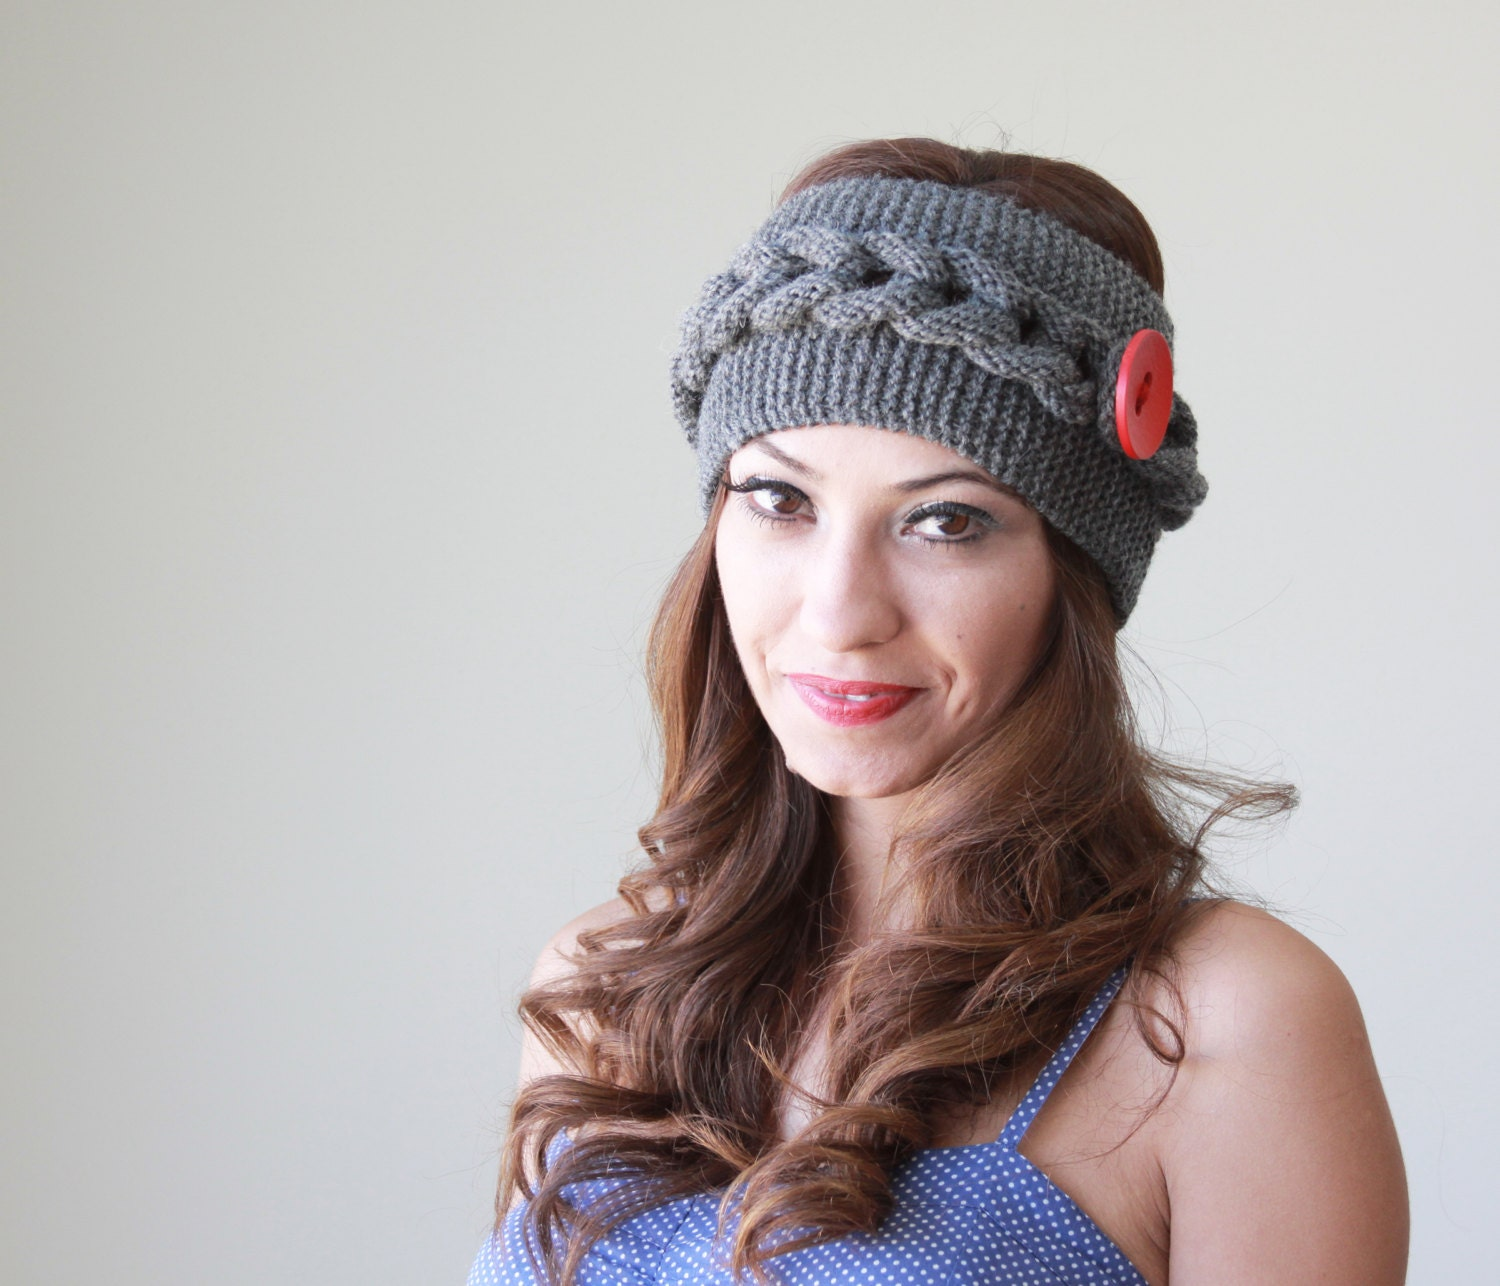 You searched for: headbands for women! Etsy is the home to thousands of handmade, vintage, and one-of-a-kind products and gifts related to your search. No matter what you're looking for or where you are in the world, our global marketplace of sellers can help you find unique and affordable options. Let's get started!